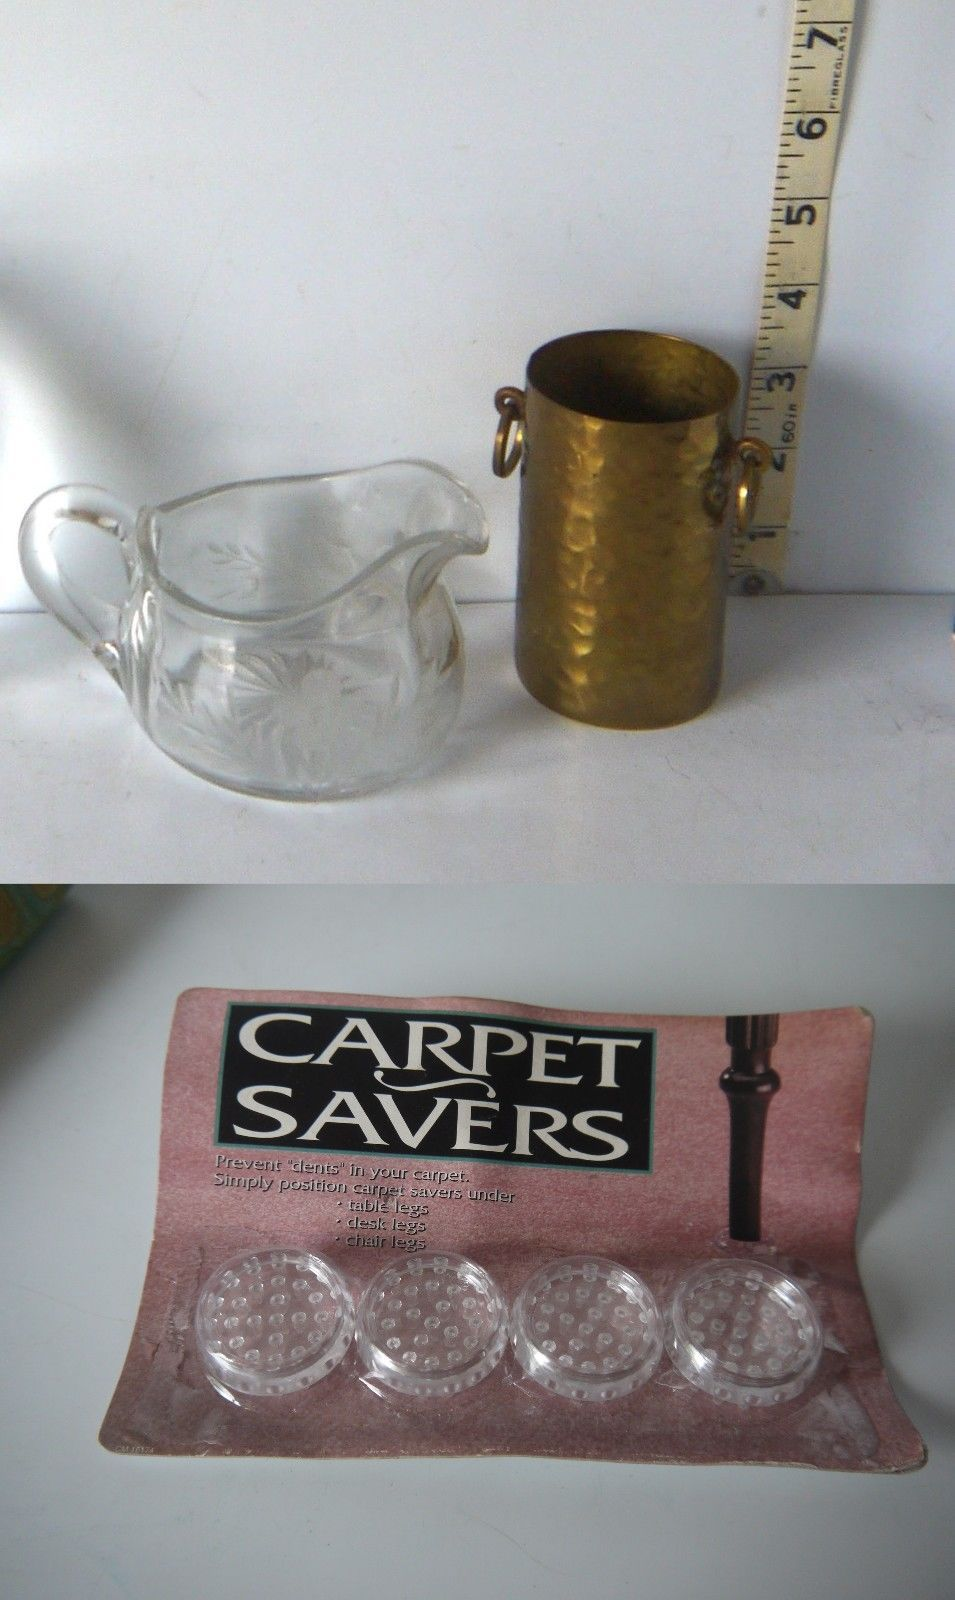 Primary image for Lot of 3 Pretty Etched Glass Pitcher, Brass Pencil Cup, Carpet Savers NIP